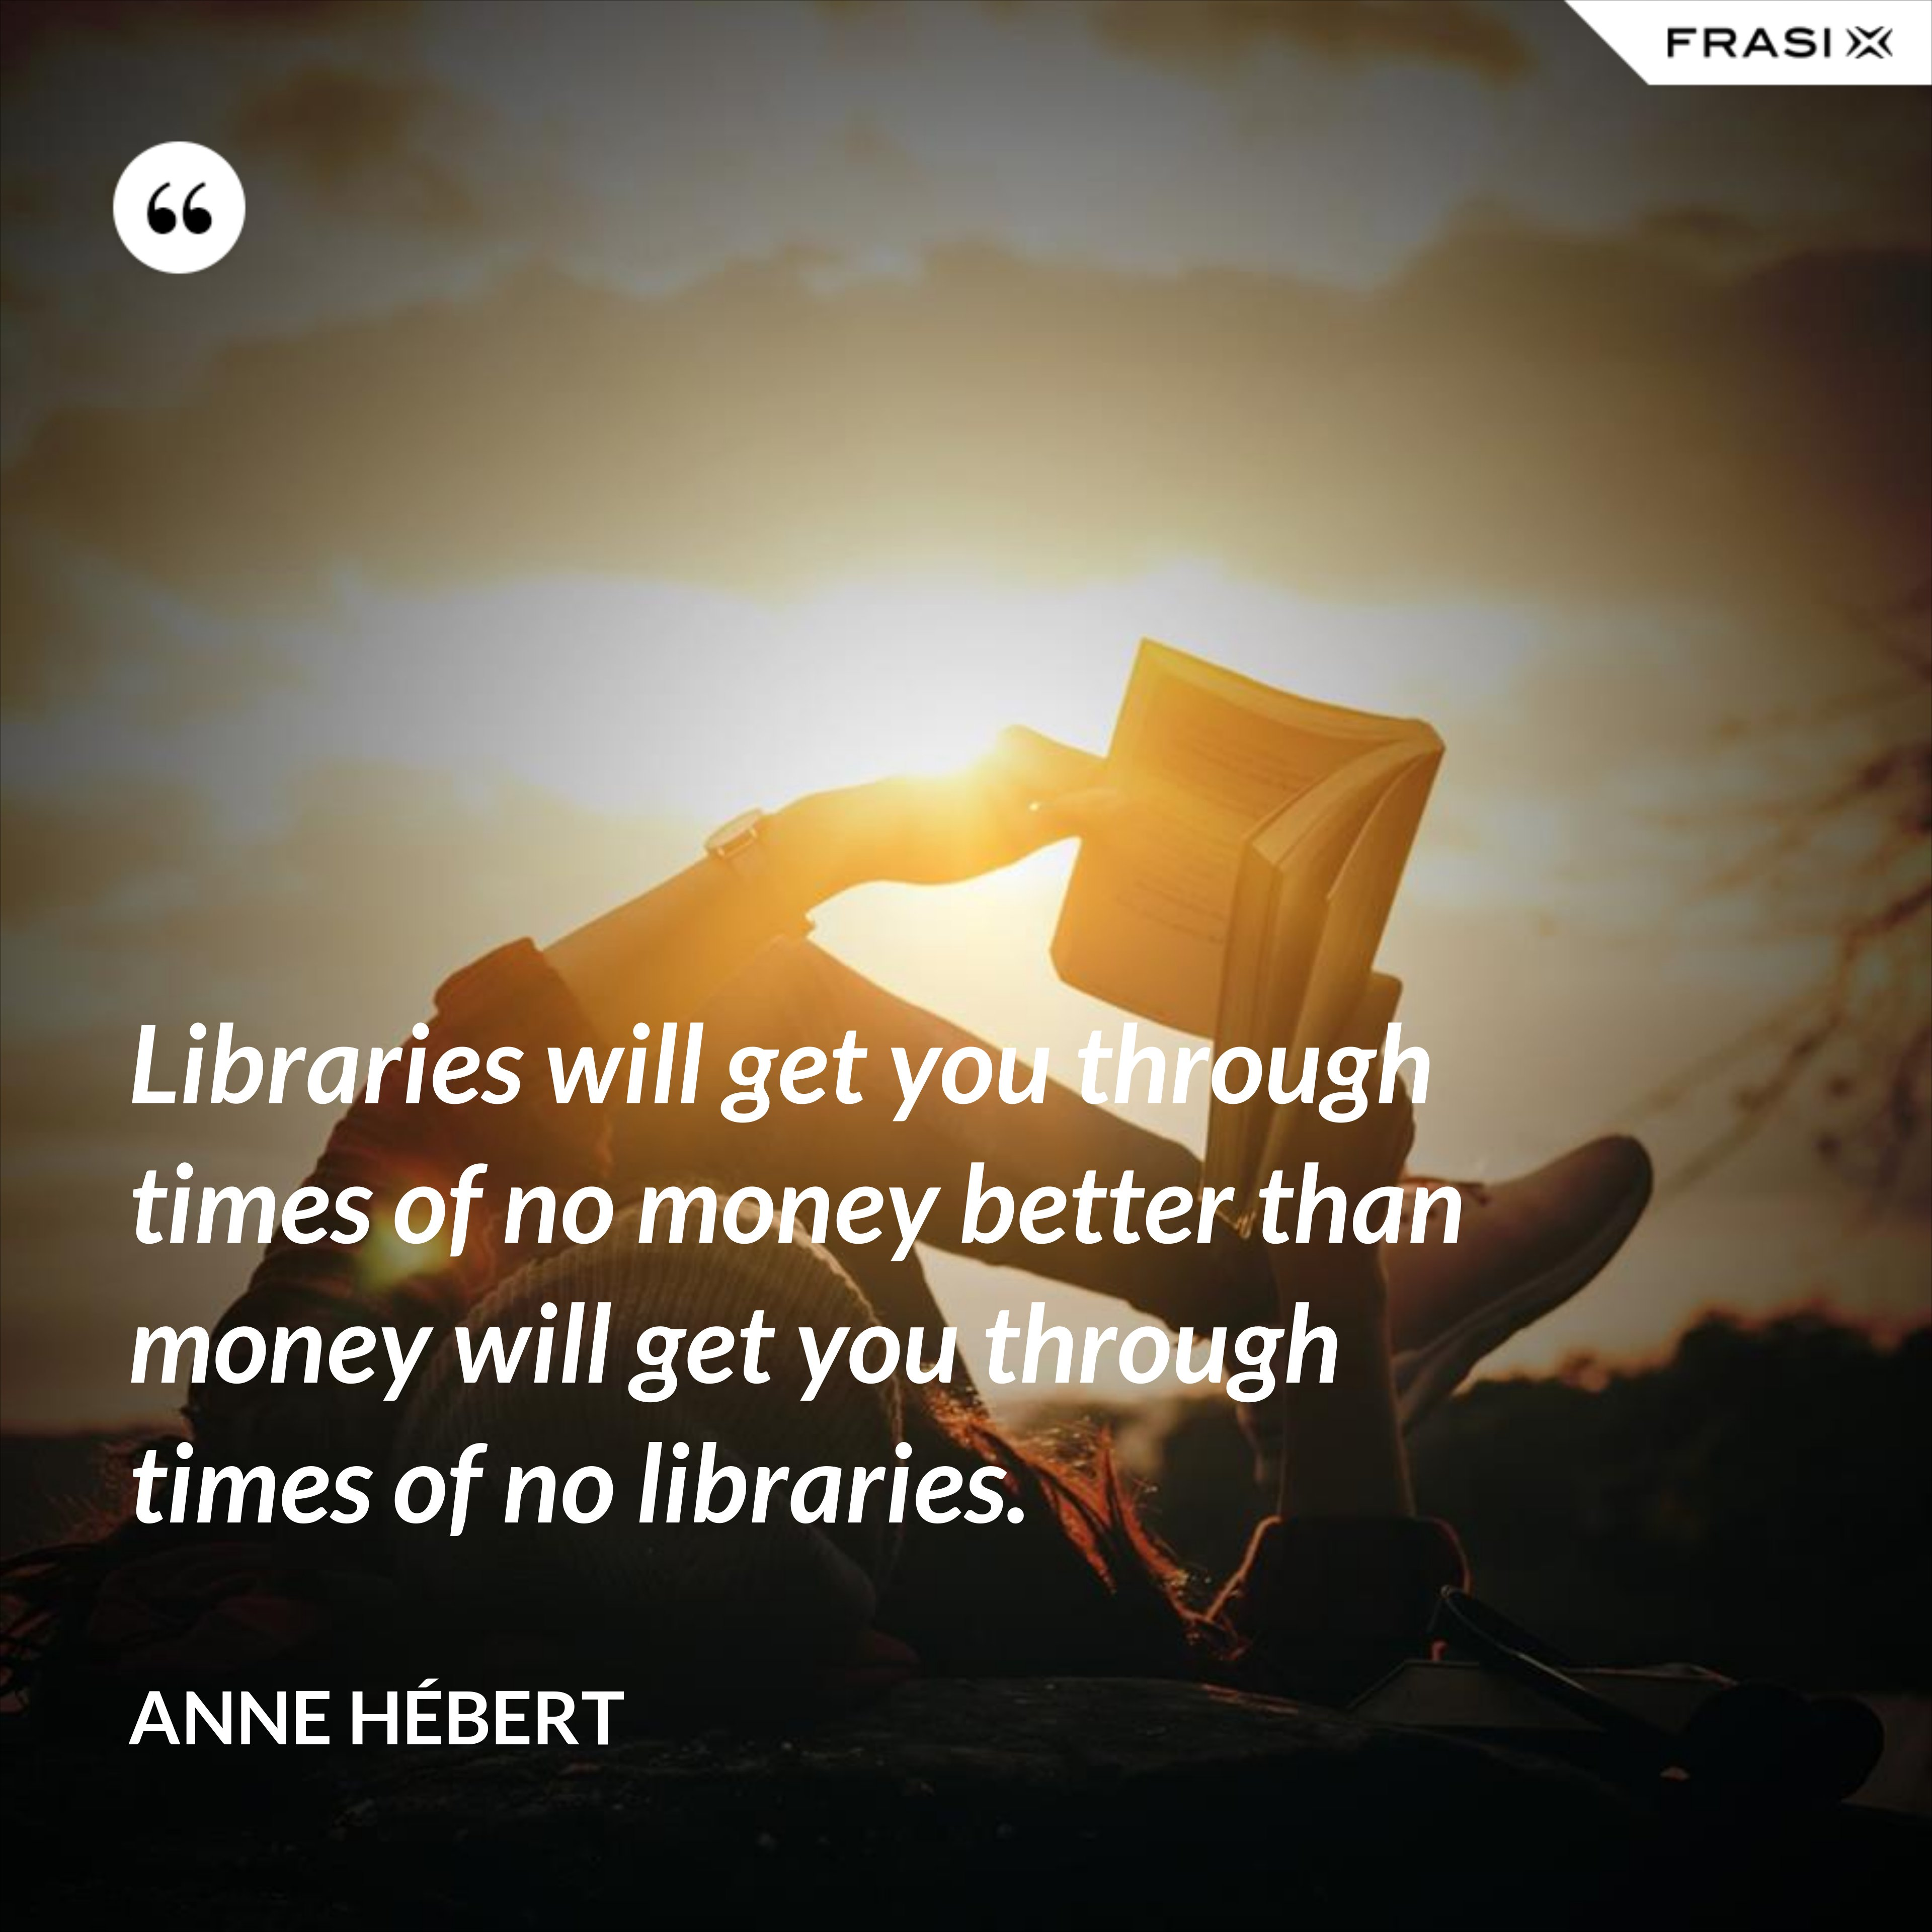 Libraries will get you through times of no money better than money will get you through times of no libraries. - Anne Hébert